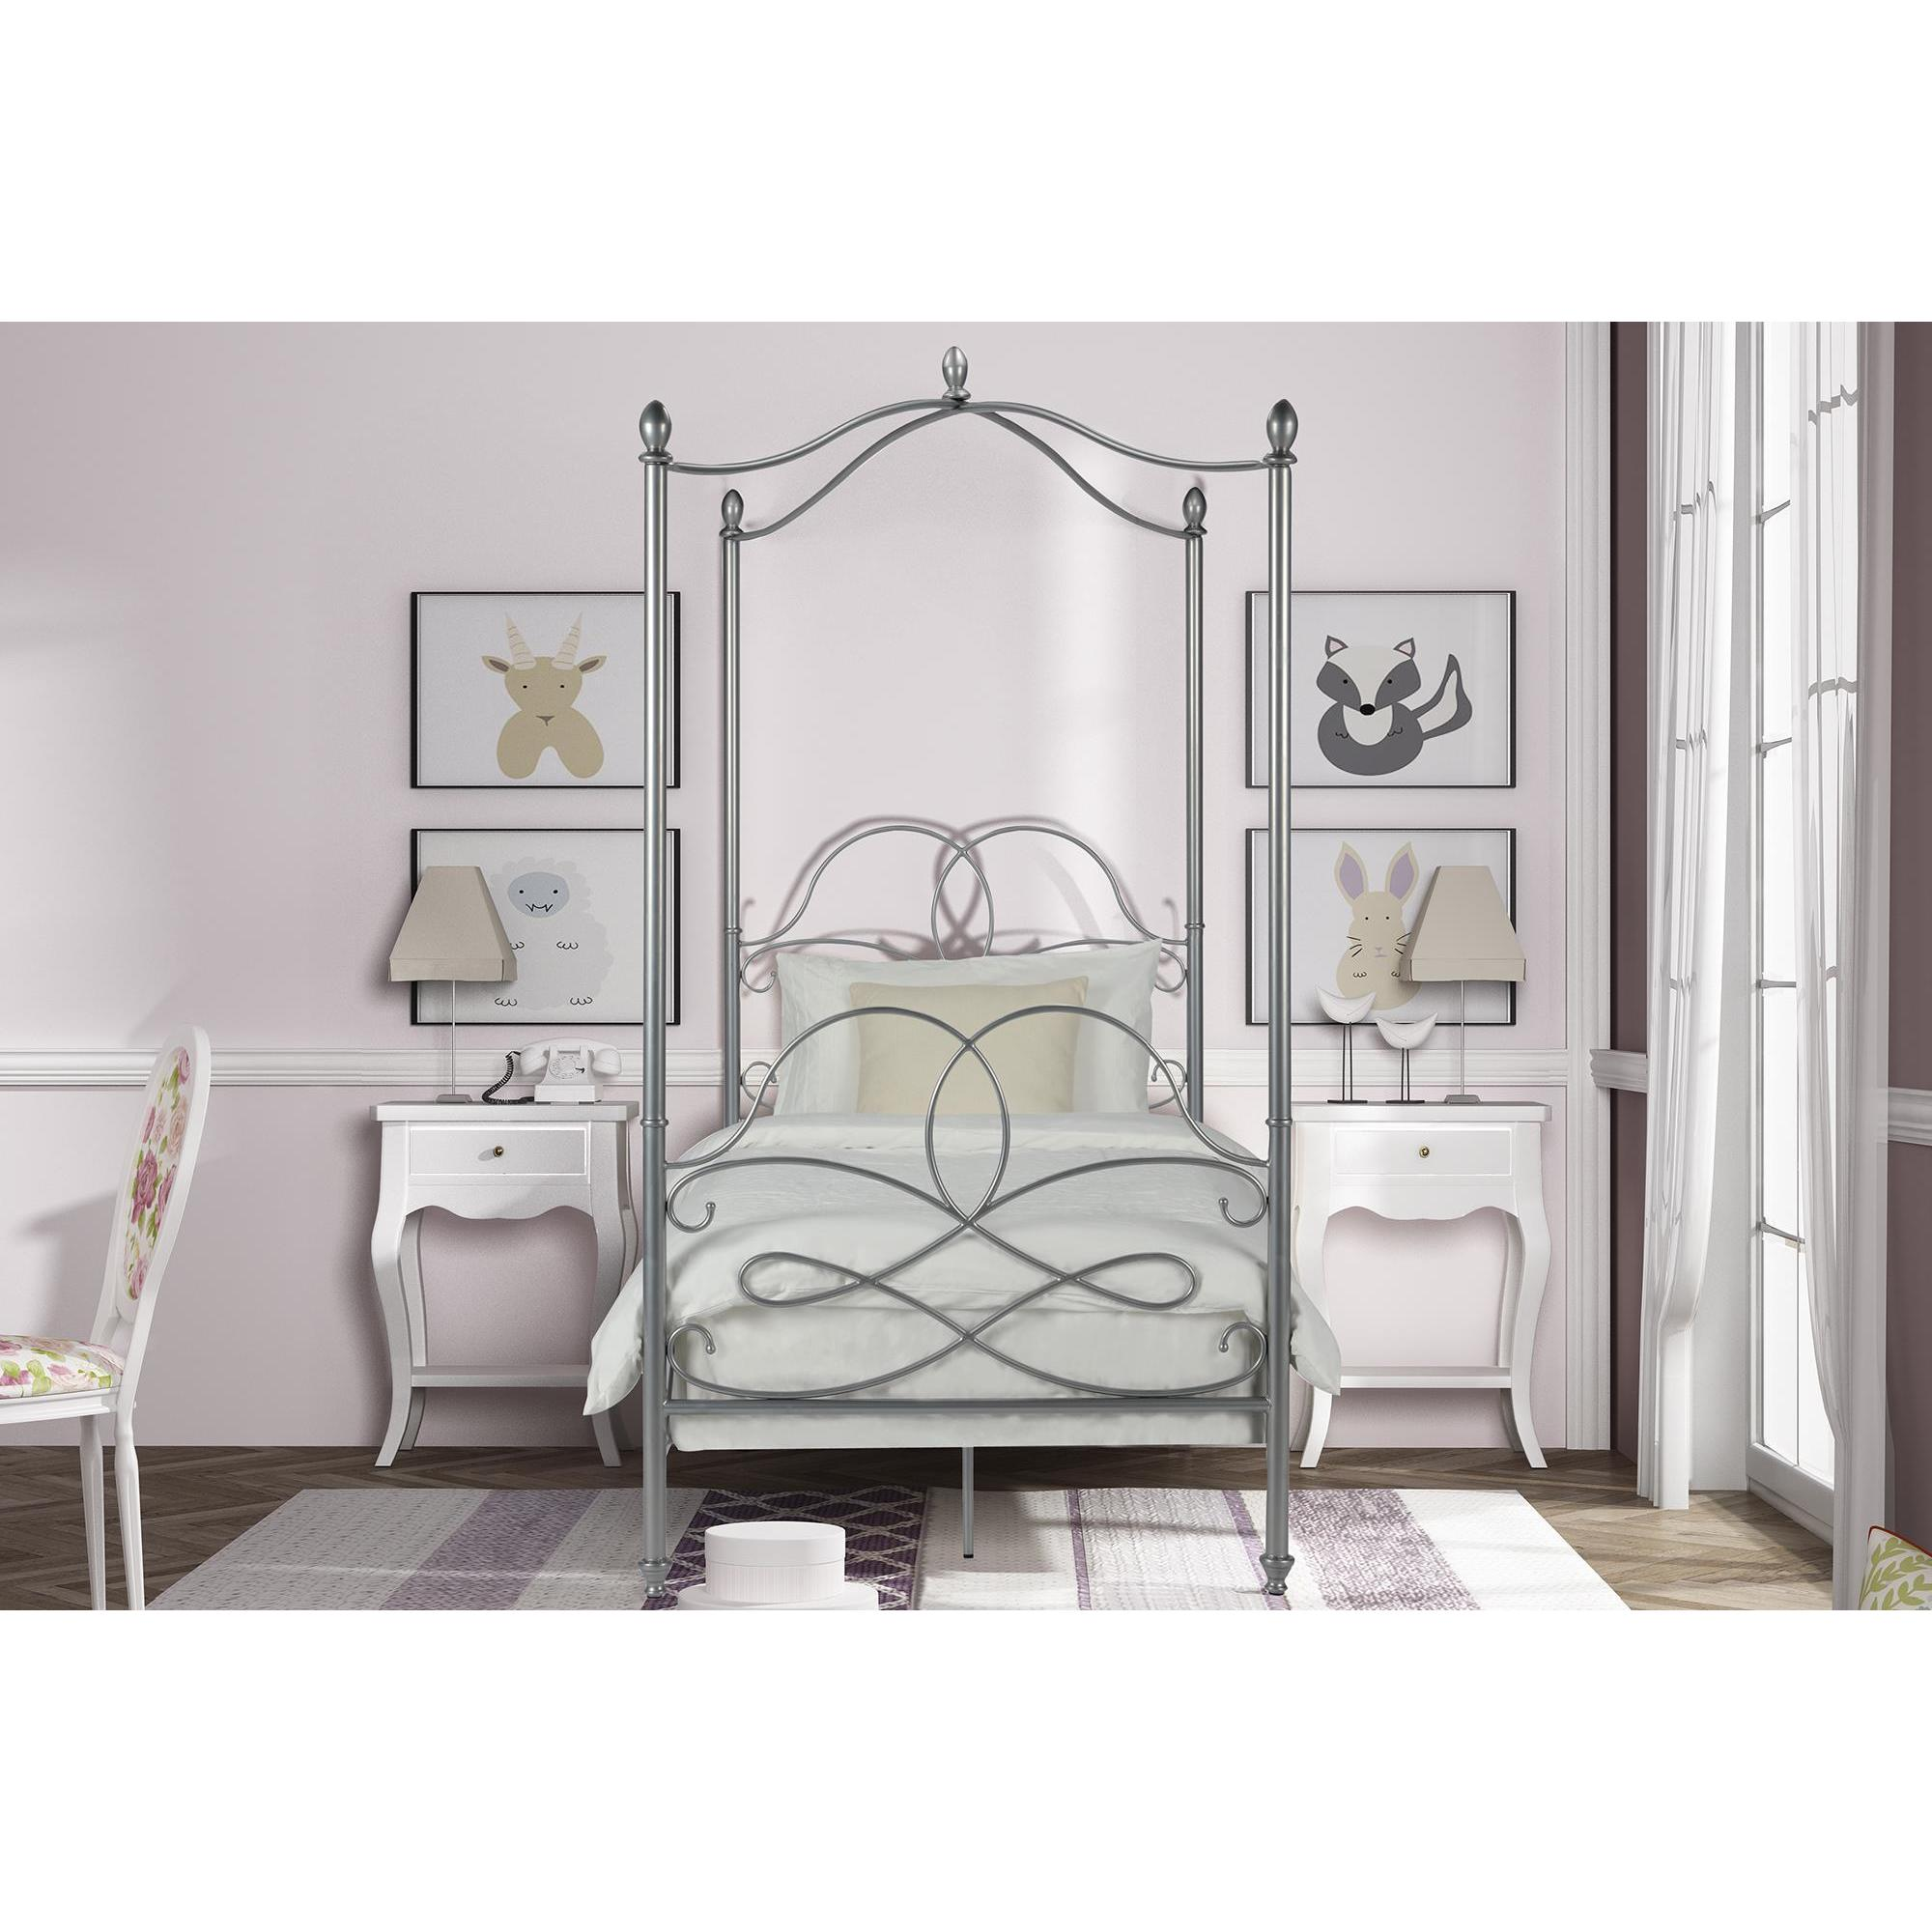 Avenue Greene DHP Fancy Silver Metal Canopy Twin Bed (Twi.  sc 1 st  Nextag & Canopy bed finial | Compare Prices at Nextag